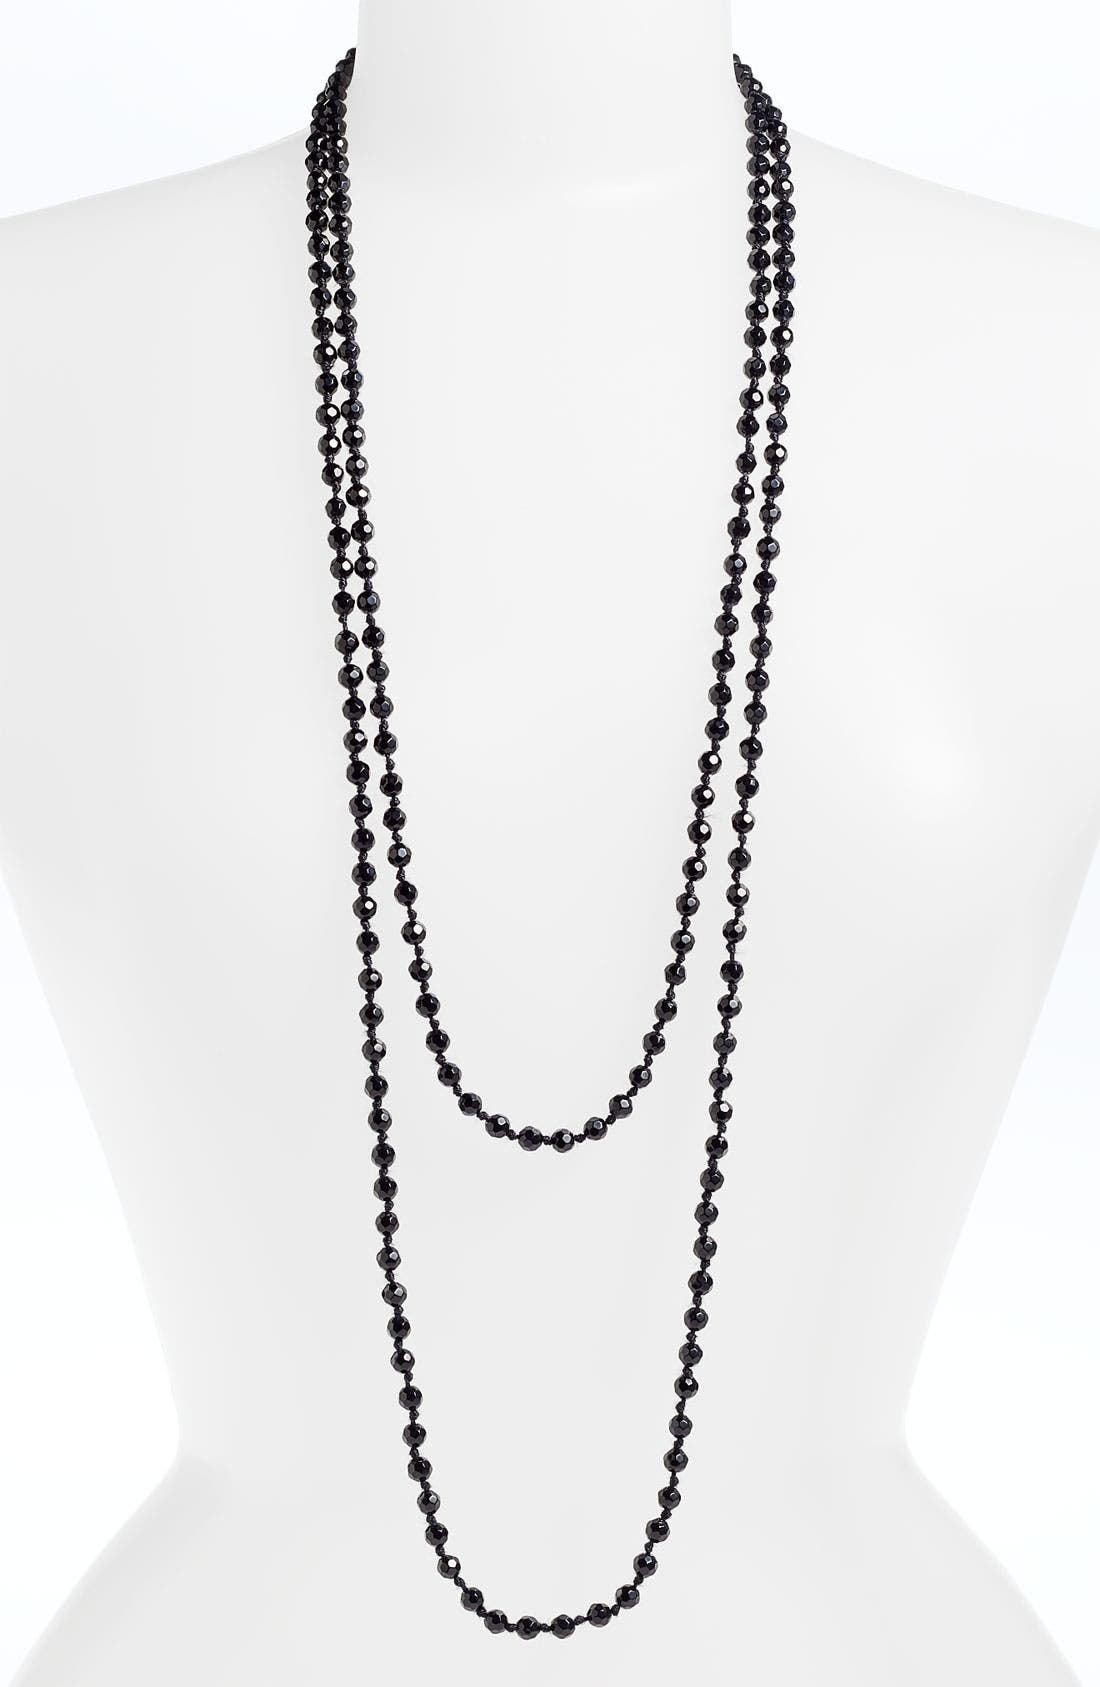 6mm Glass Pearl Extra Long Strand Necklace,                             Alternate thumbnail 4, color,                             001